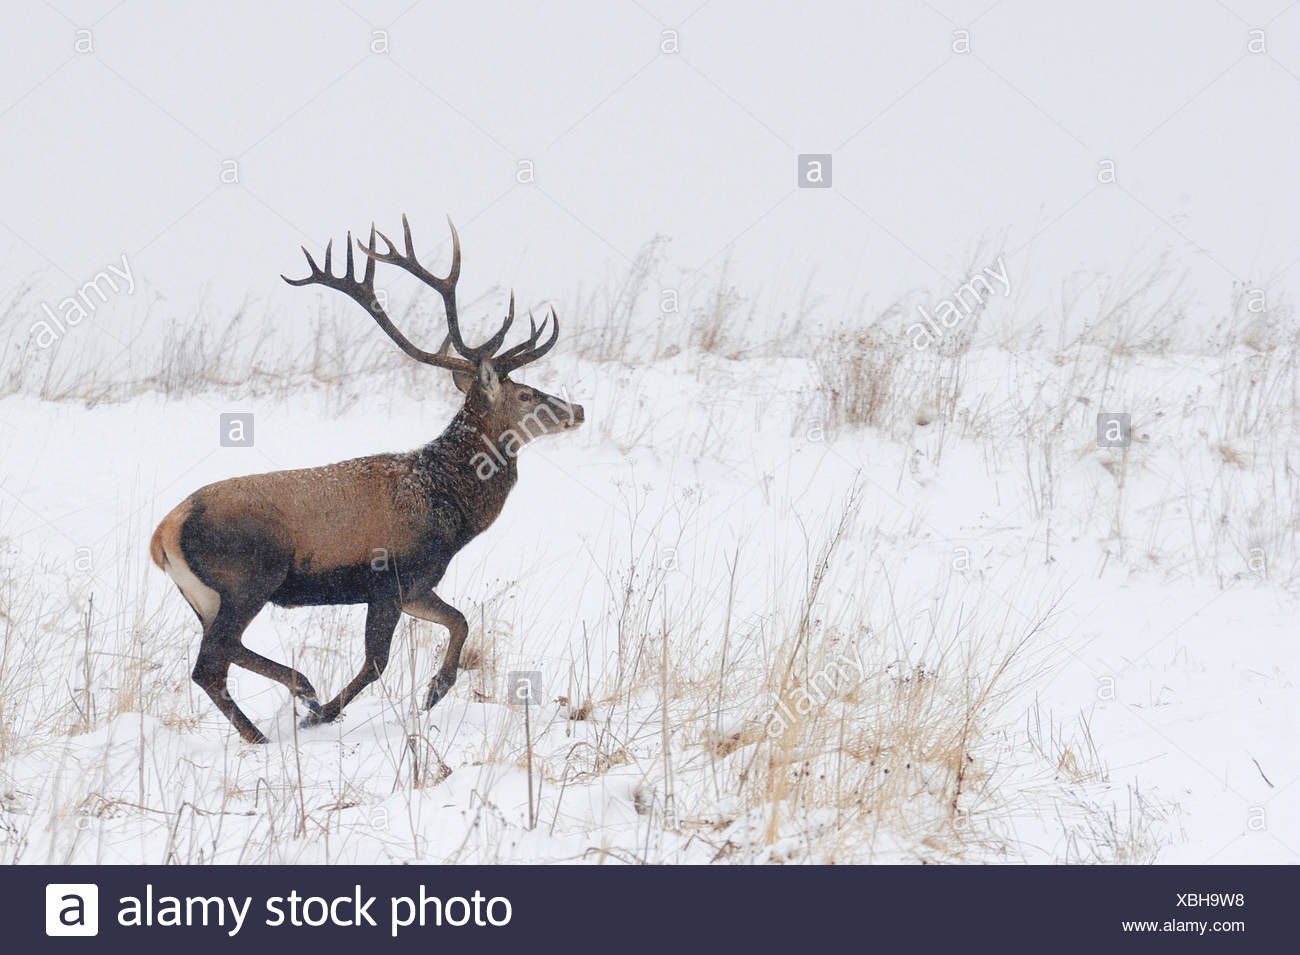 * REPEAT Red deer (Cervus elaphus) stag running in snow, Bieszczady Mountains, Poland - Stock Image